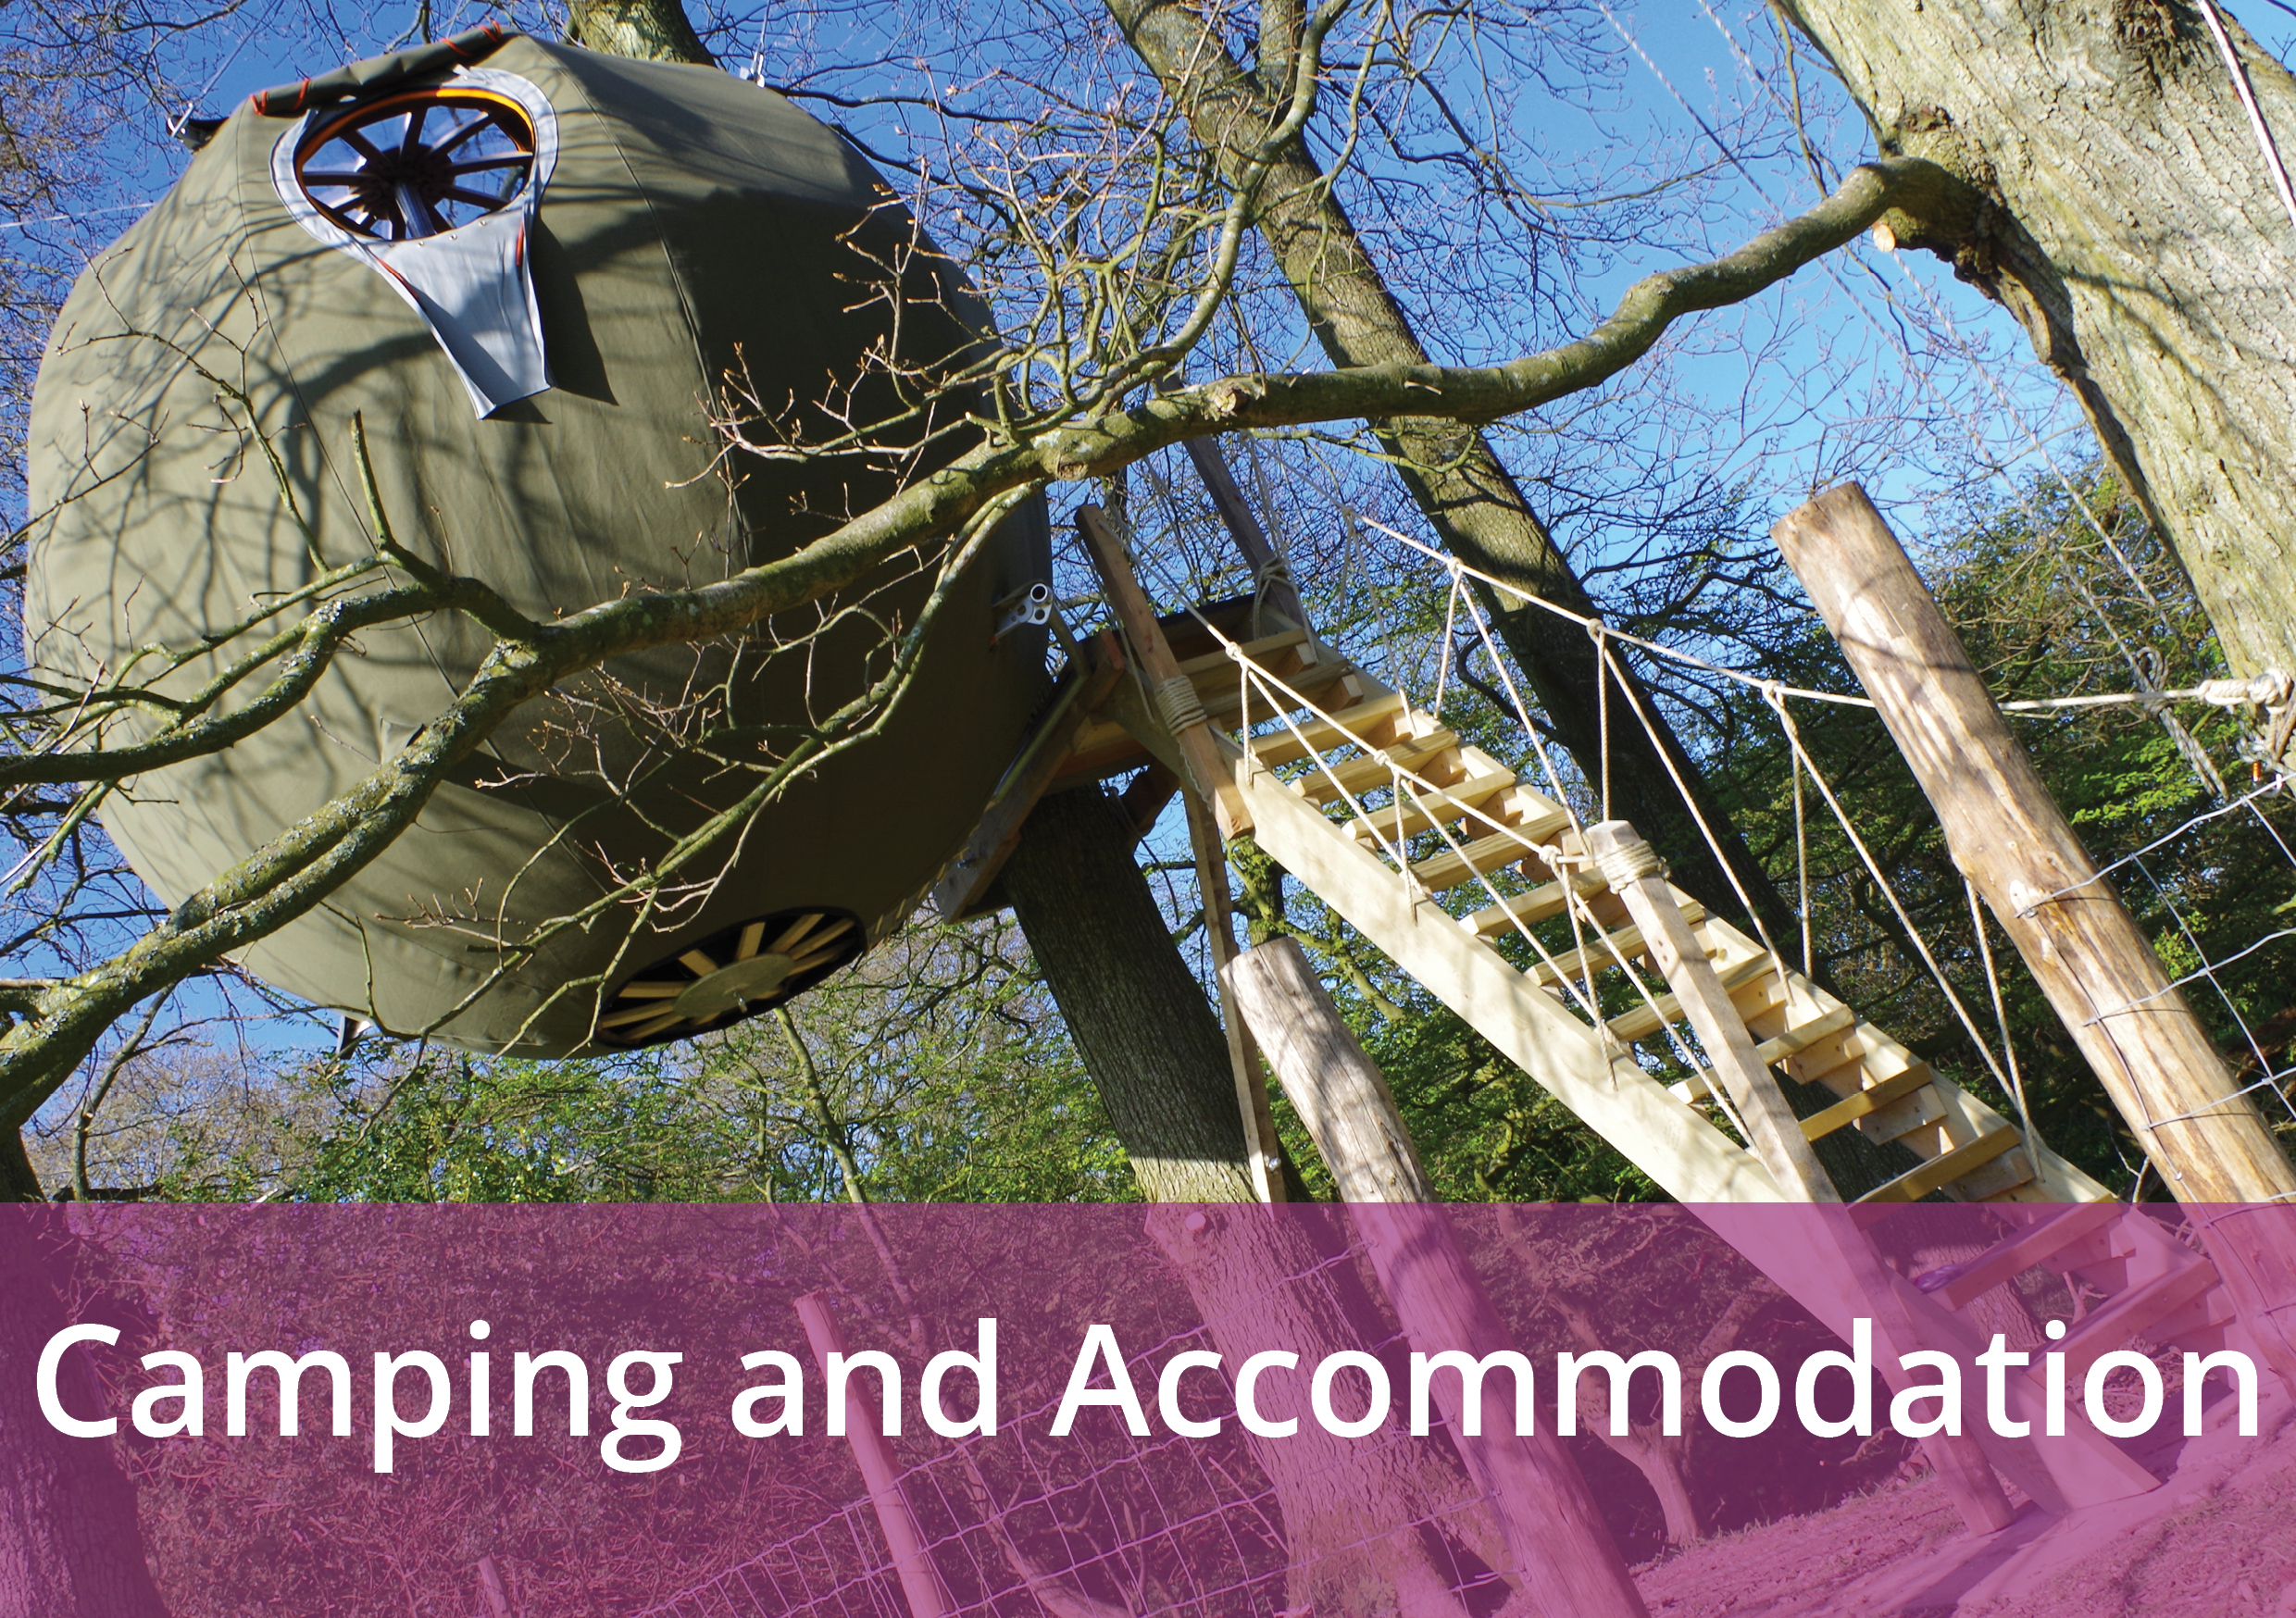 Image gateway to Camping and Accommodation page